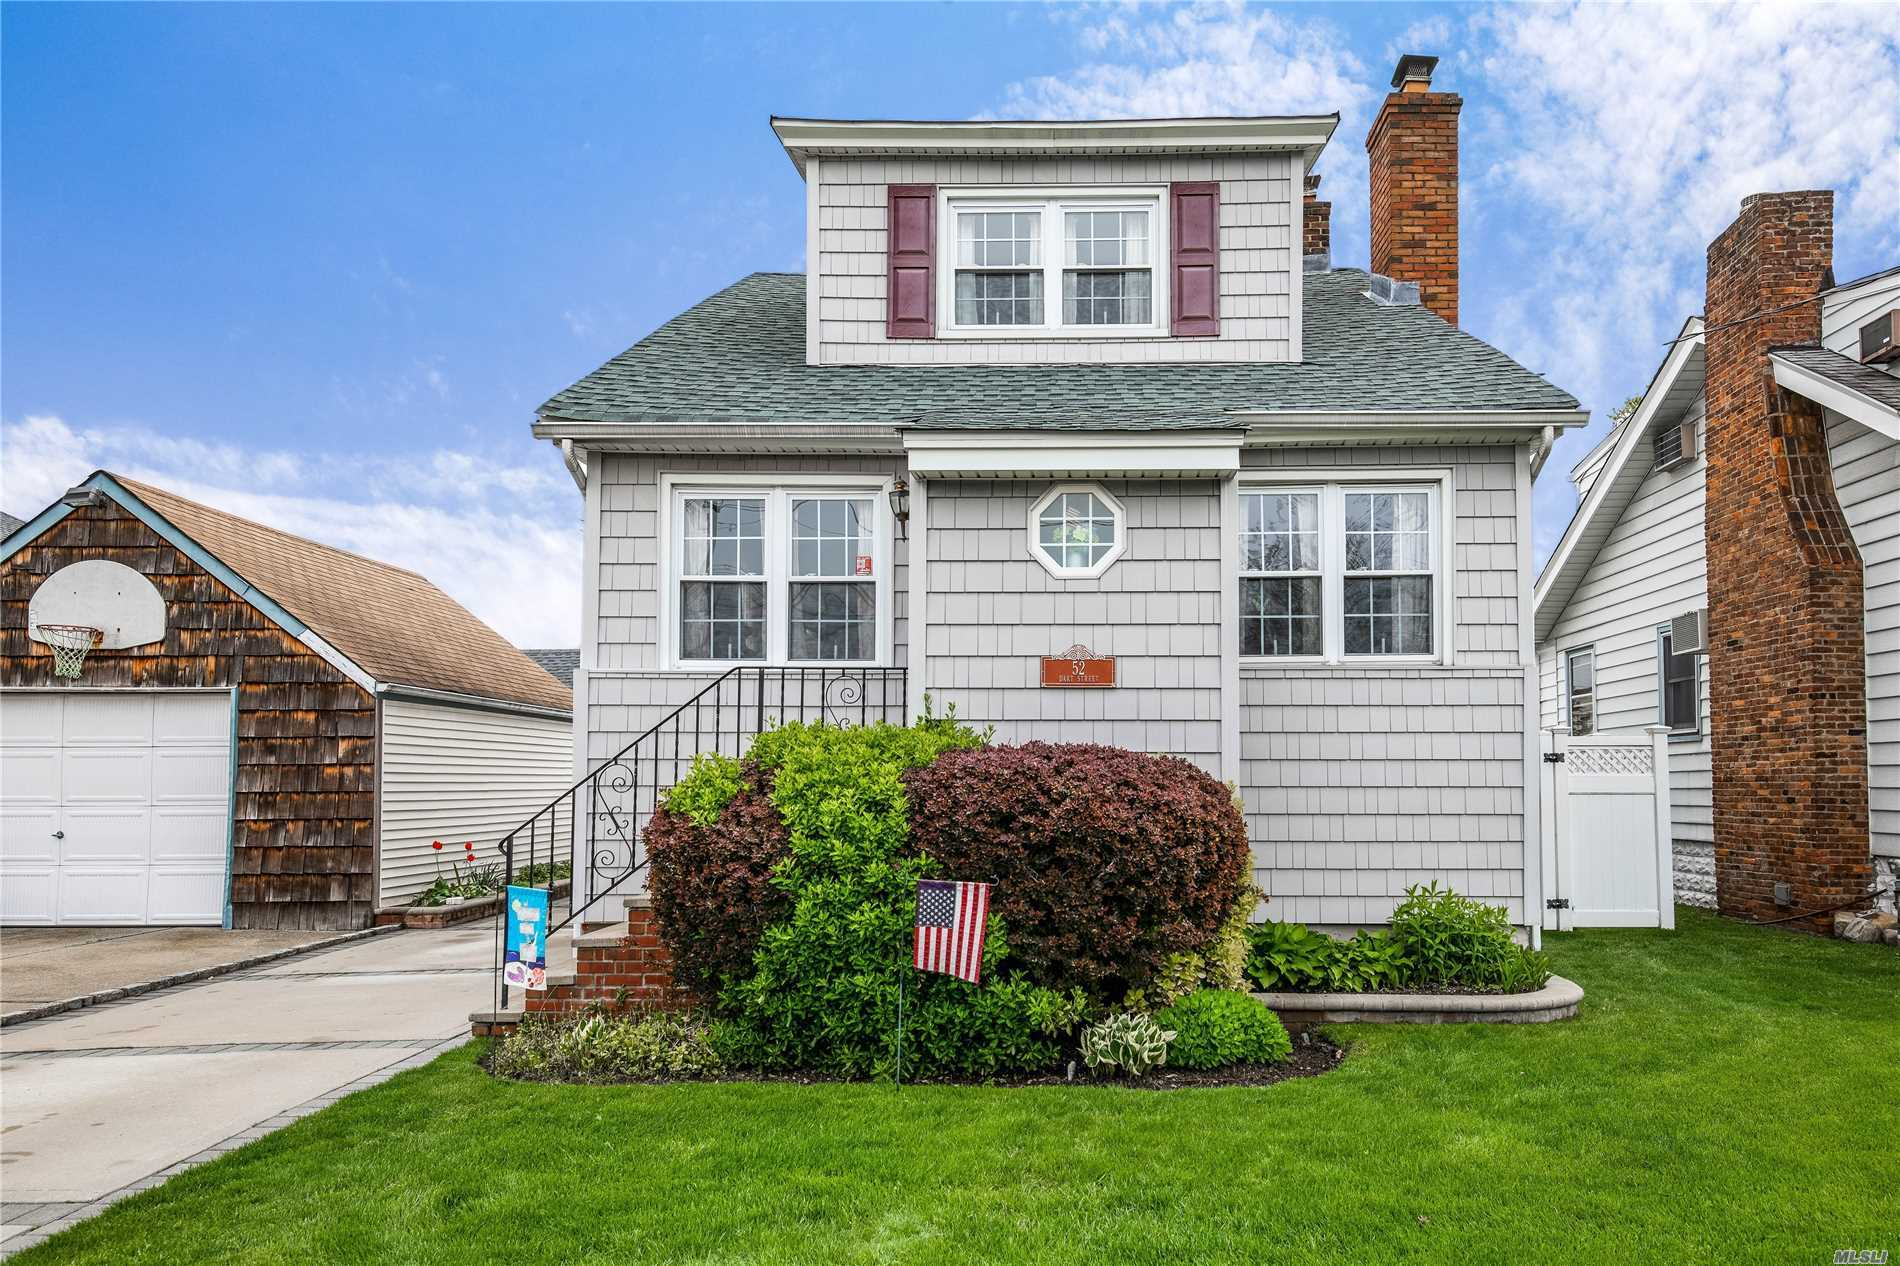 3br, 2fbth colonial in south area of East Rockaway. Lr w/ wood burning fireplace, DR, EIK. New roof 1st layer (2018), gas boiler and HW heater, electric and sump pump installed 2012. Large fully fenced in yard, 2 zone IGS. Close to town, shopping, schools and parks. Close to LIRR for easy commute.